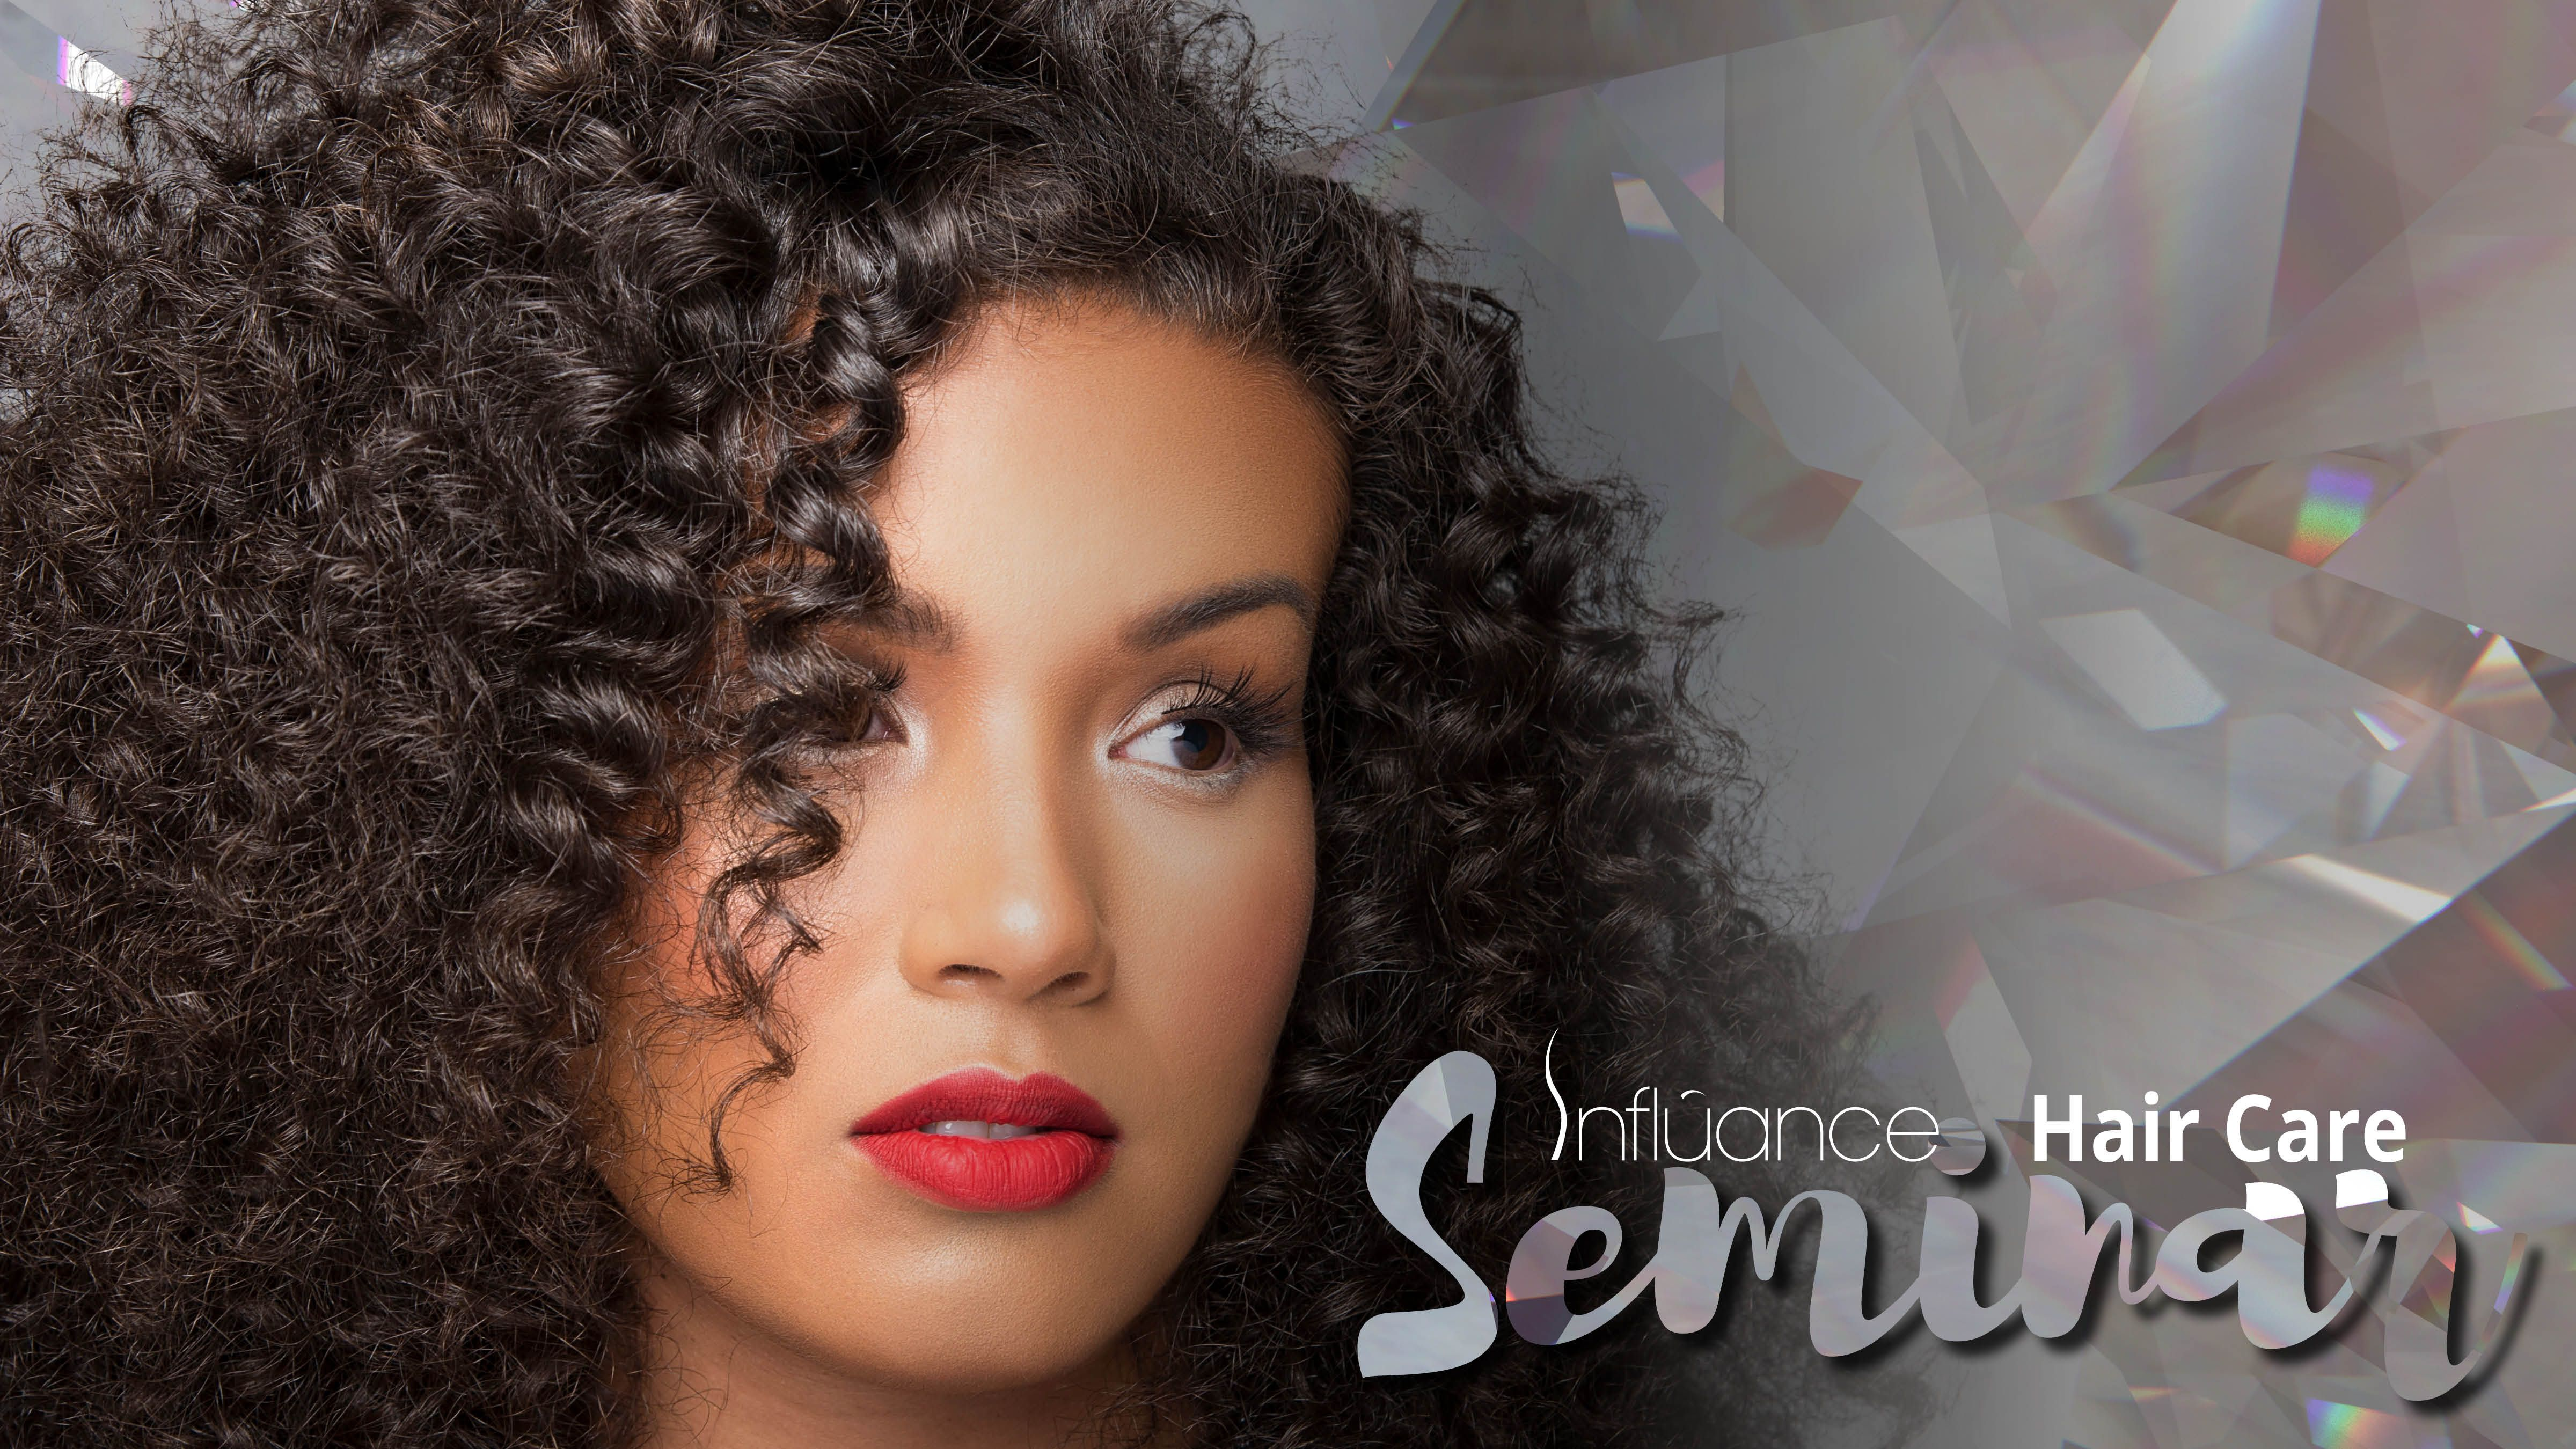 Learn how to maintain and style natural healthy hair at